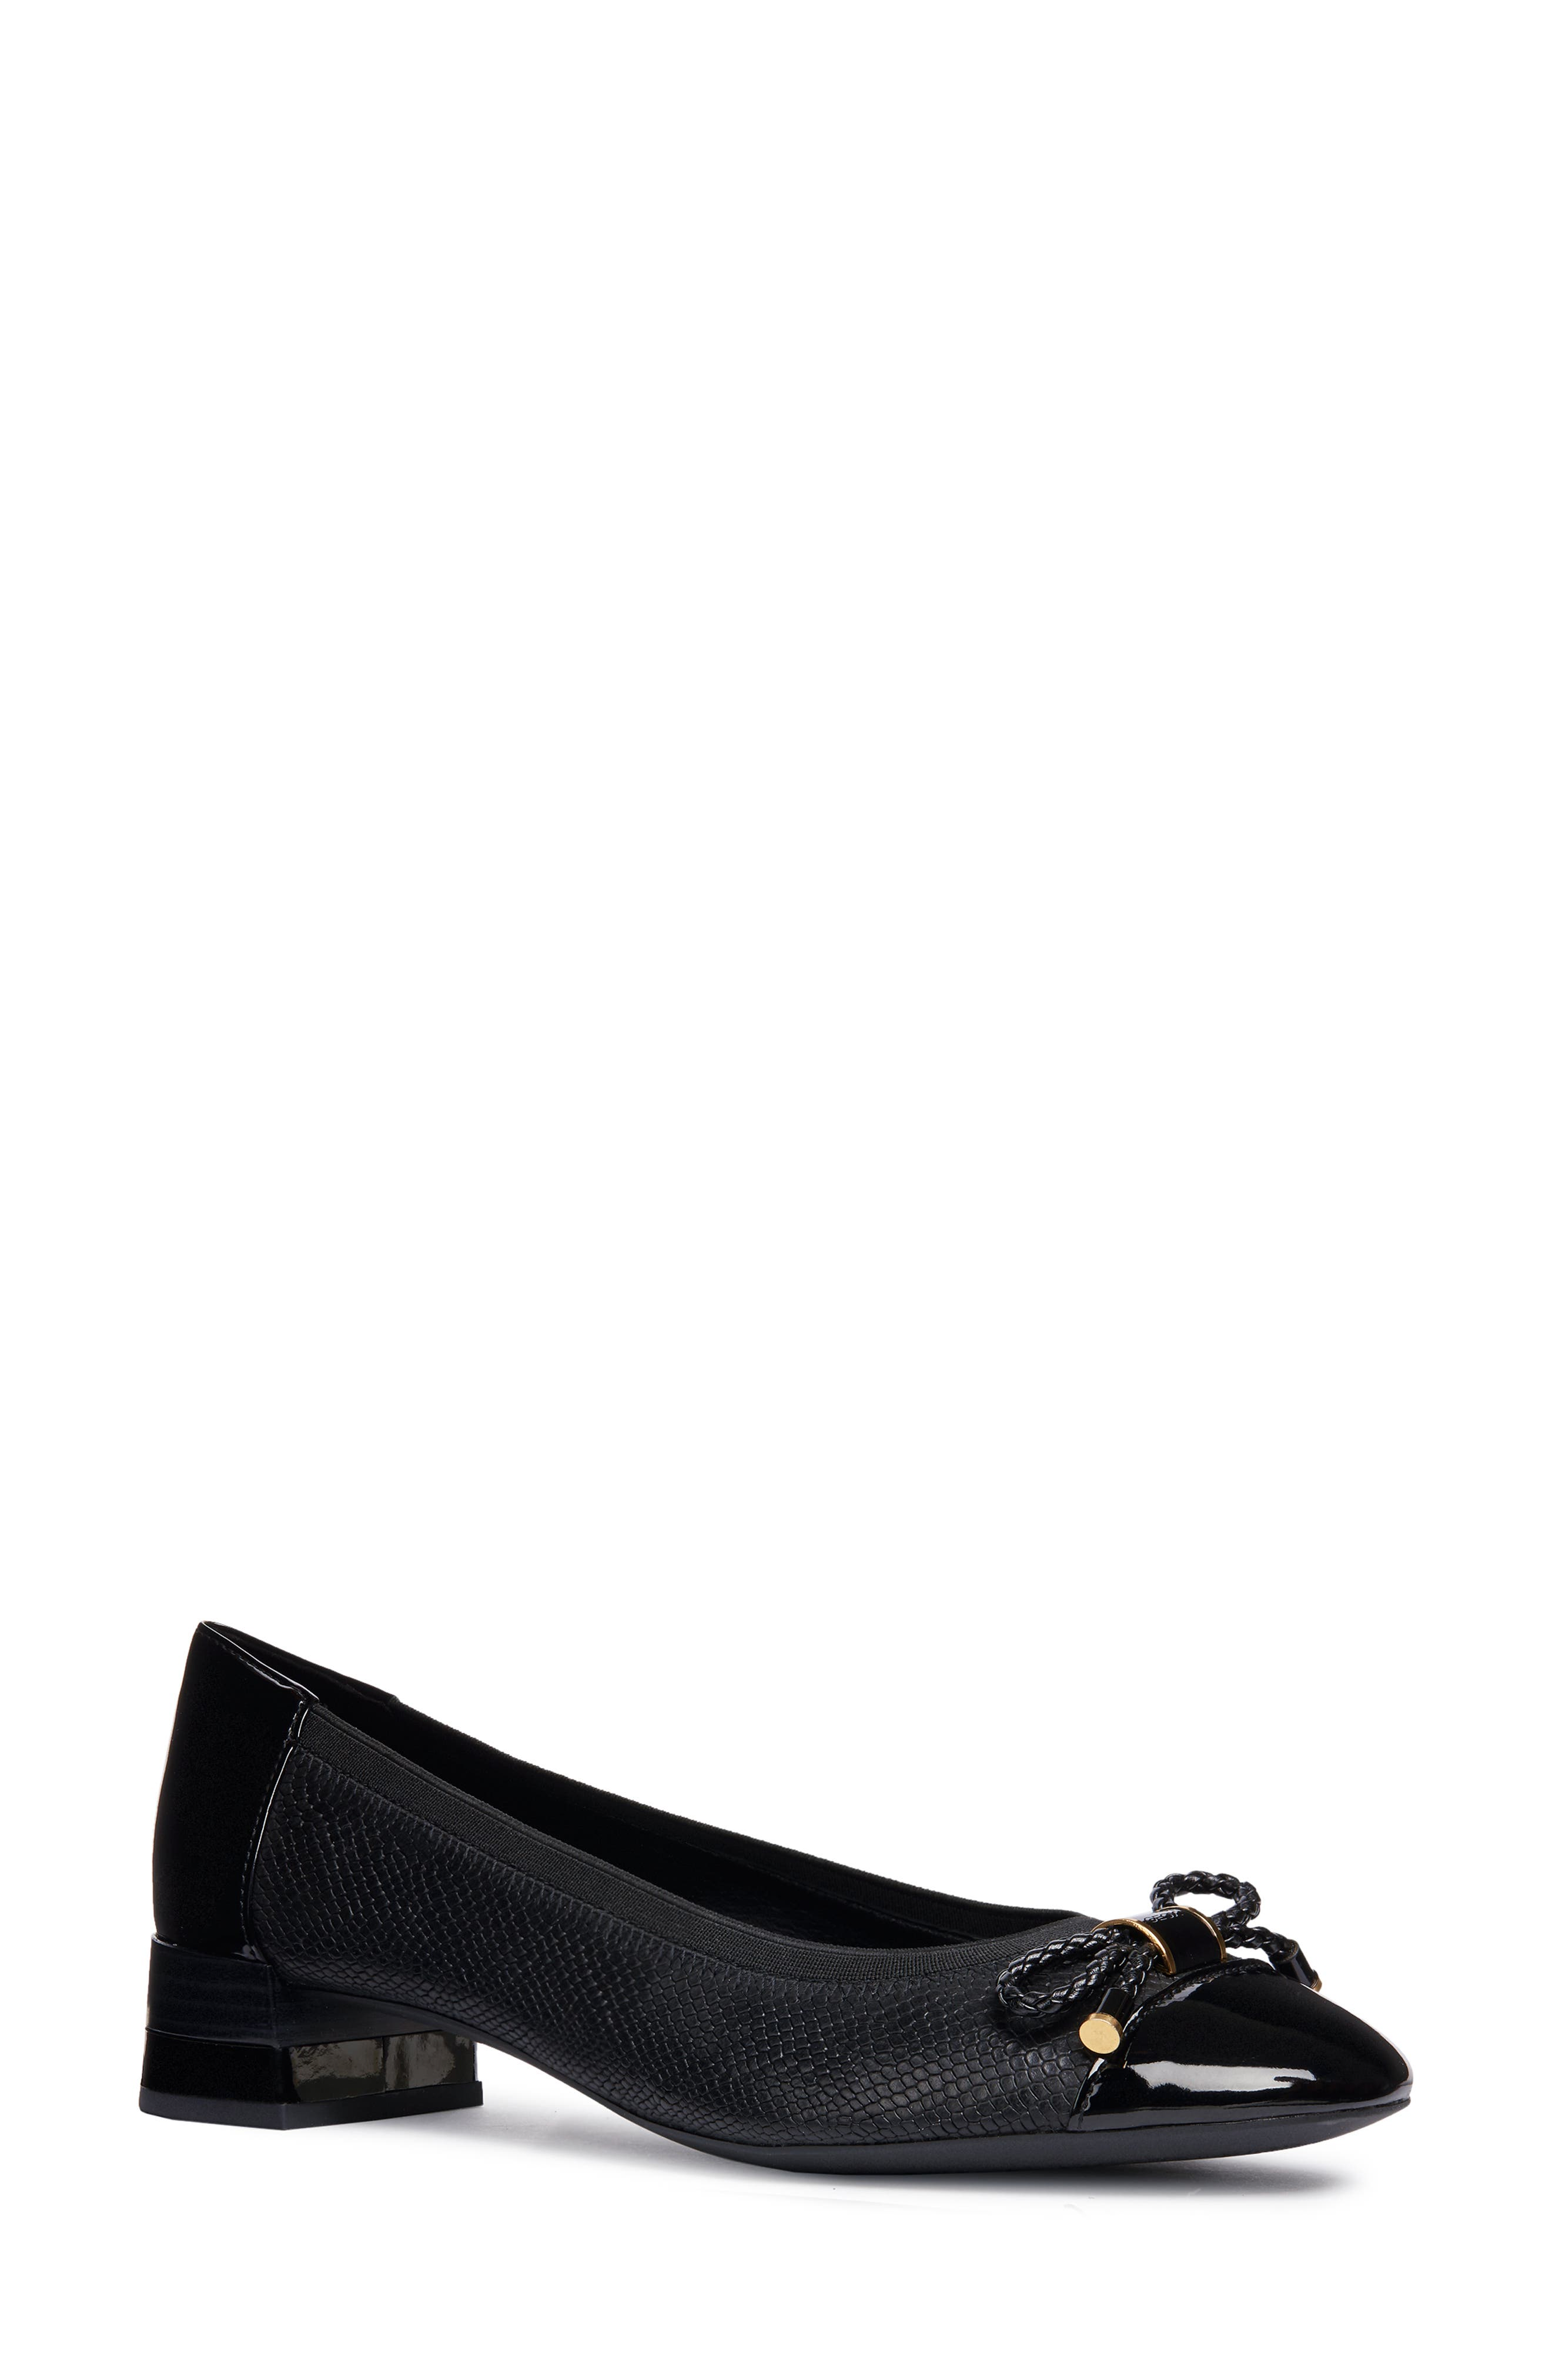 Chloo Pump,                         Main,                         color, BLACK LEATHER